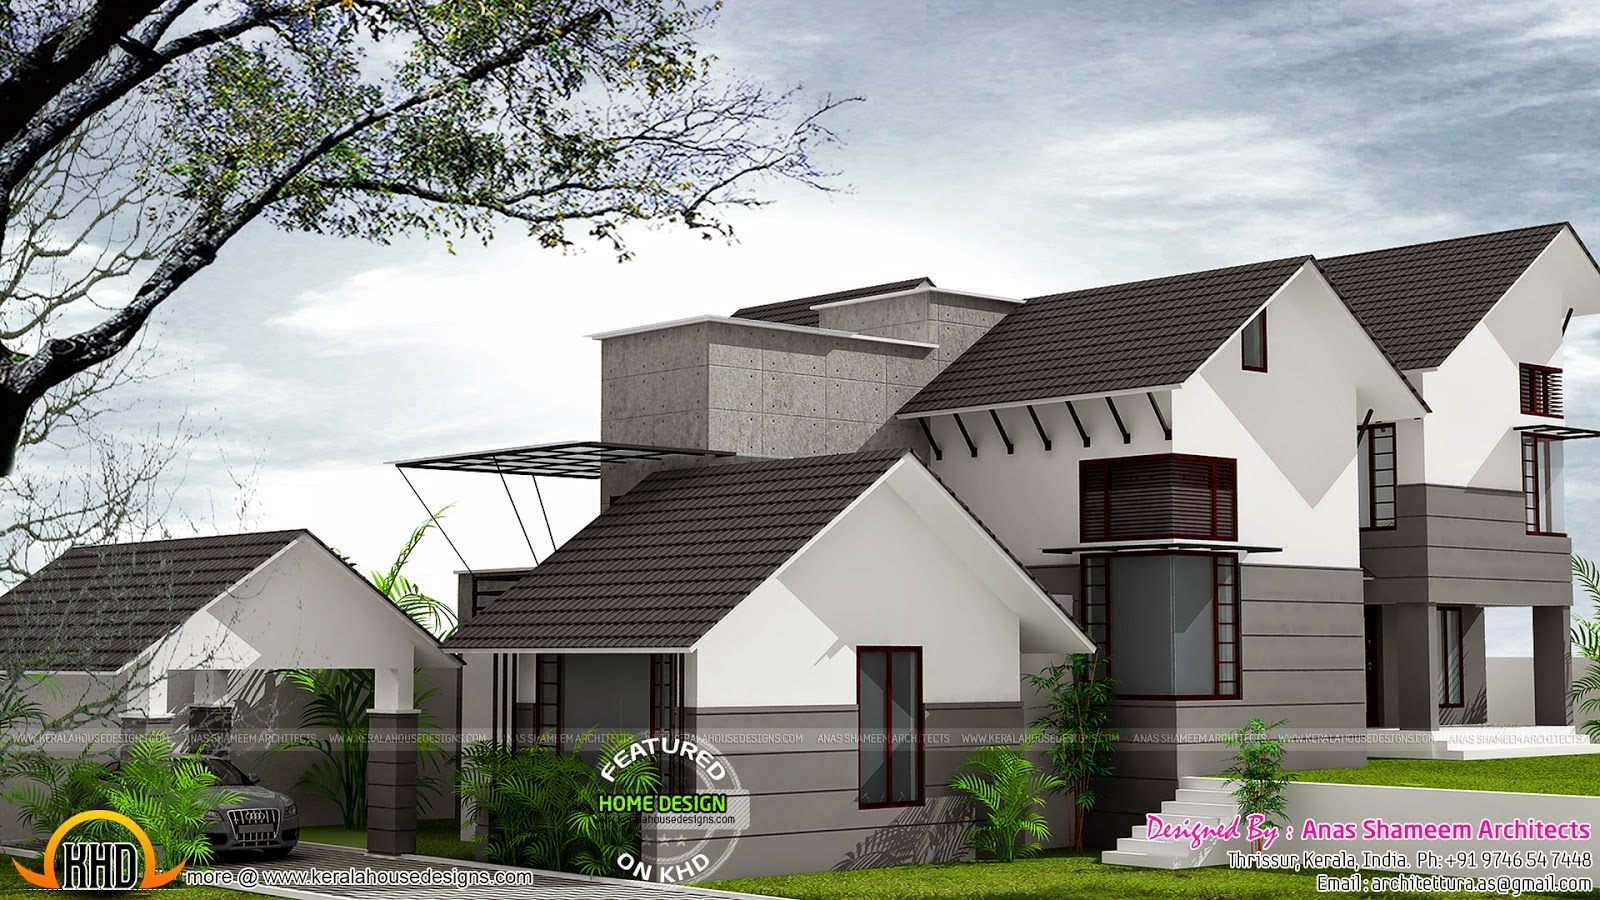 Contour site house architecture kerala home design and for Architecture design kerala house